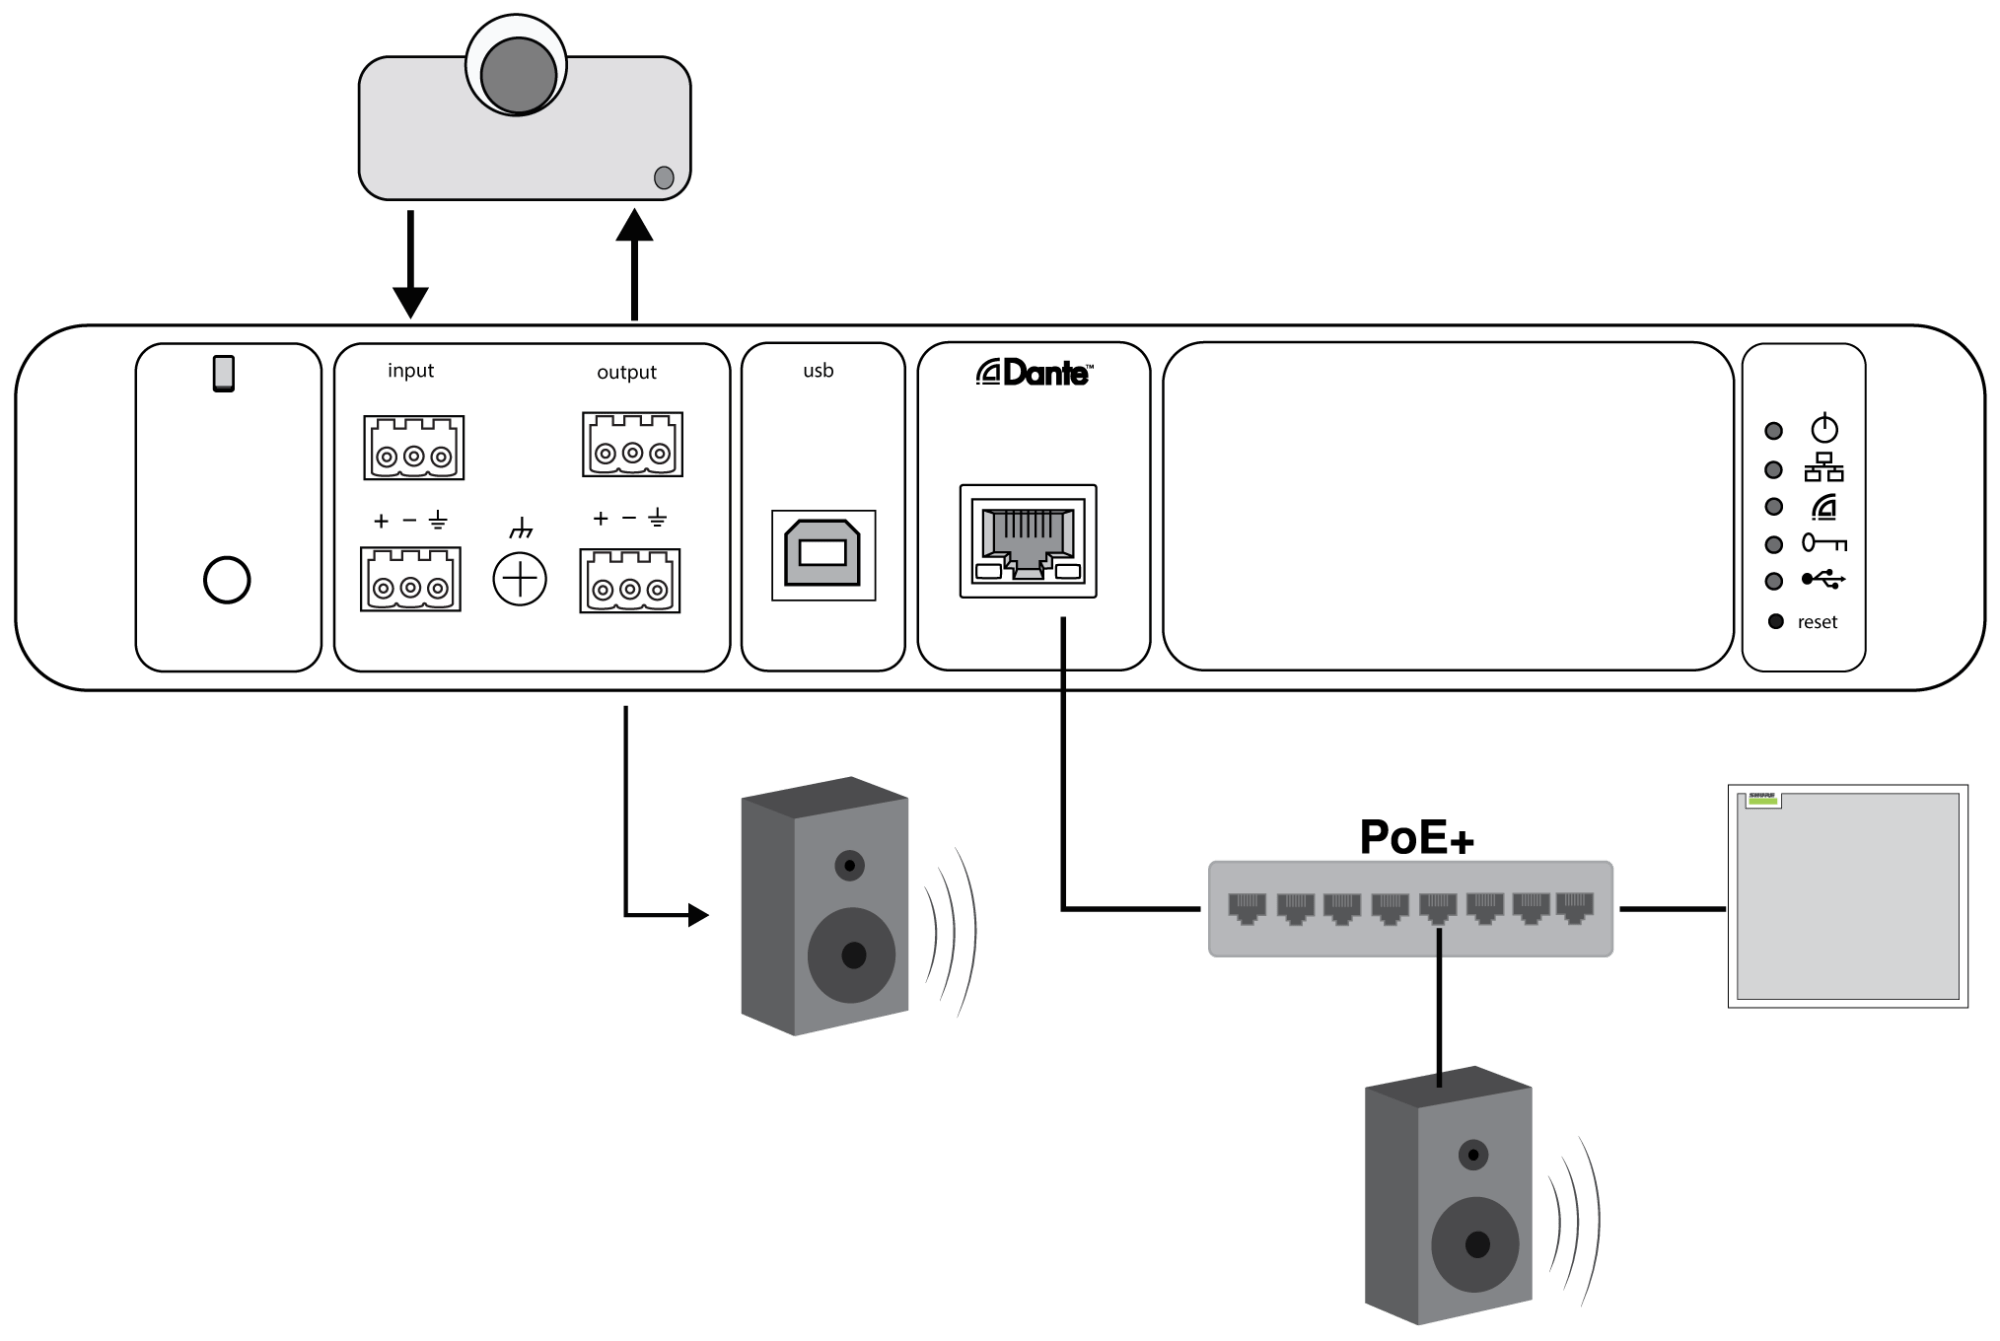 hight resolution of connect the hardware codec audio output to the p300 analog input 1 in the matrix mixer this is labeled analog from codec